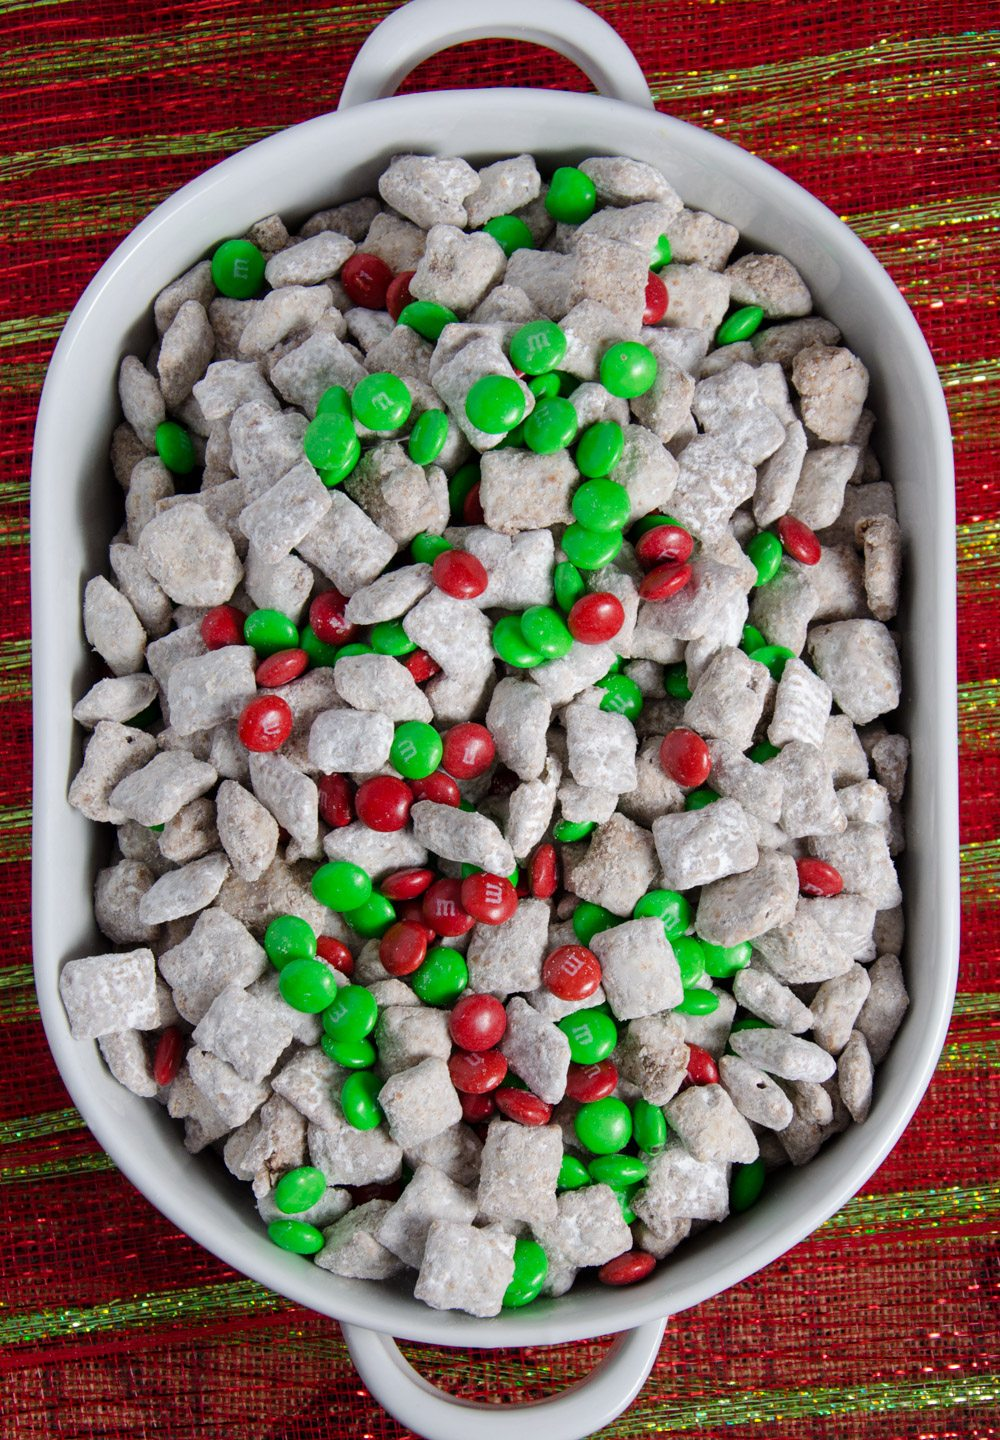 Overhead view of reindeer chow with red and green cloth underneath.